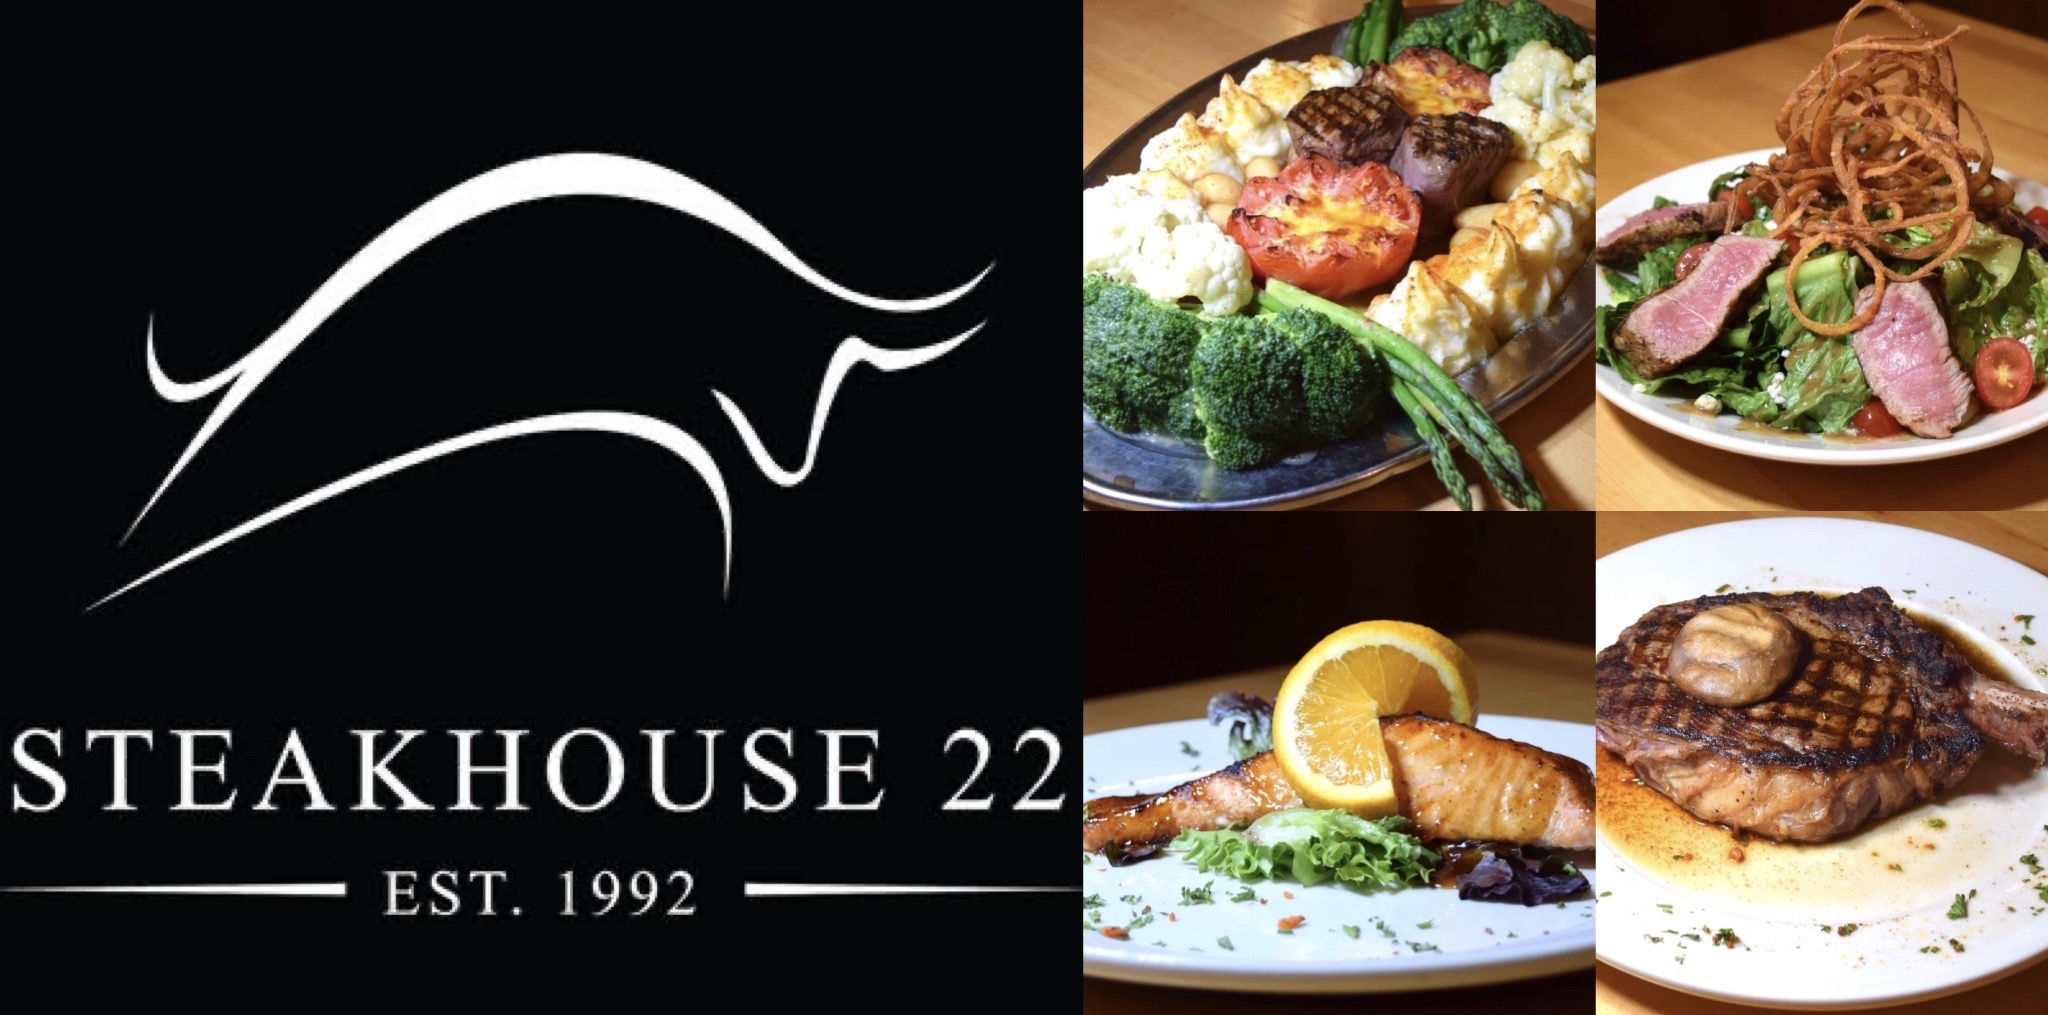 Nick's 22nd Street Steakhouse